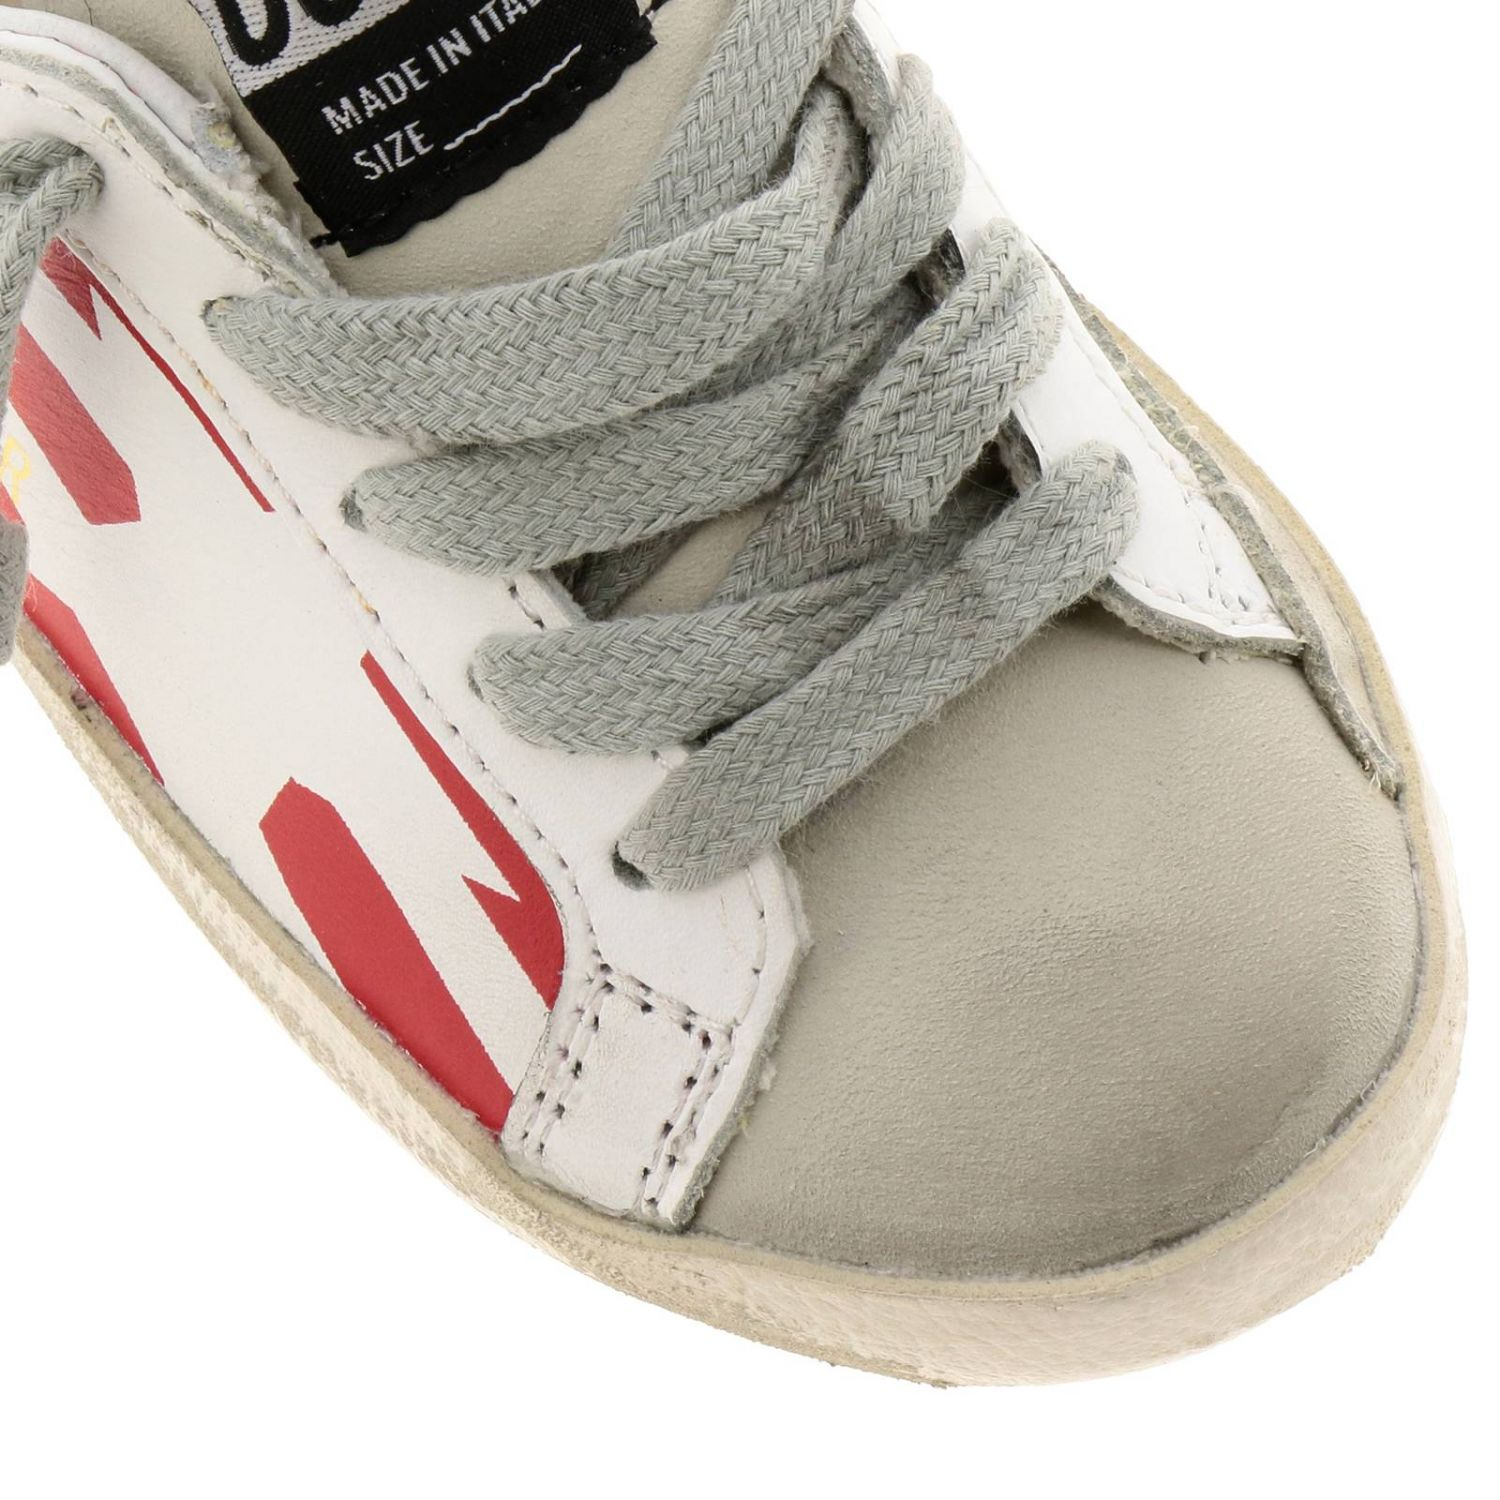 Sneakers Superstar Golden Goose in pelle a righe con stella stampata bianco 3